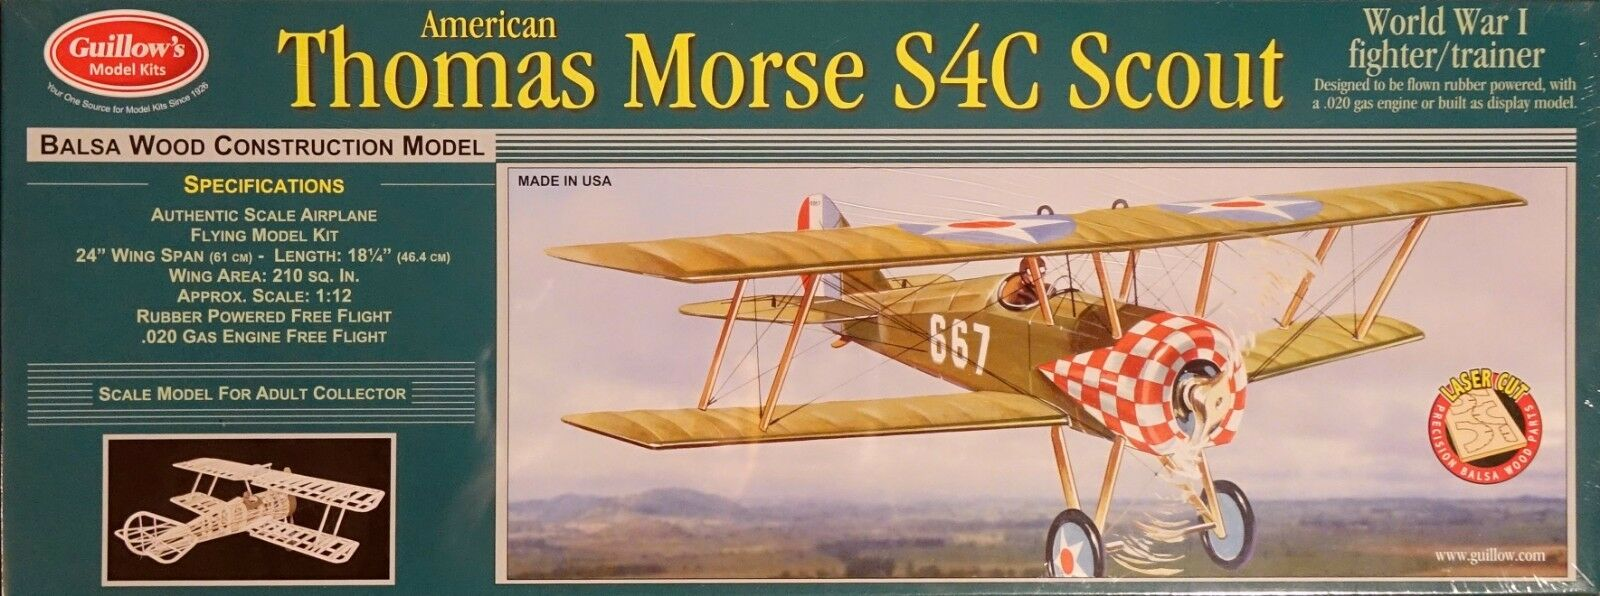 Guillow's Thomas Morse Scout 24  Laser Cut Scale Rubber Powerosso Flying Model 201